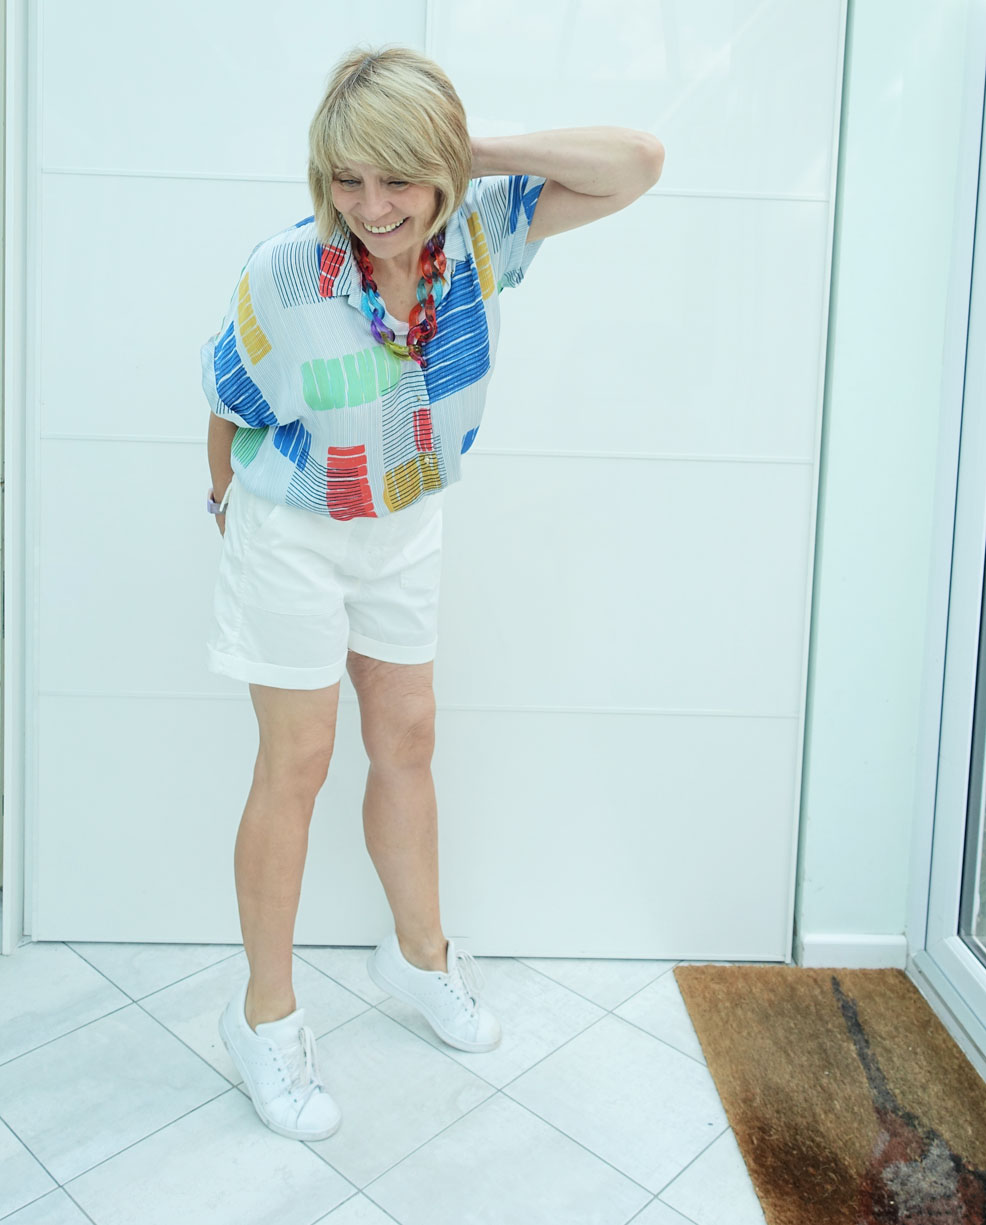 Gail Hanlon from over 50s style blog Is This Mutton in white shorts, abstract print blouse and white trainers